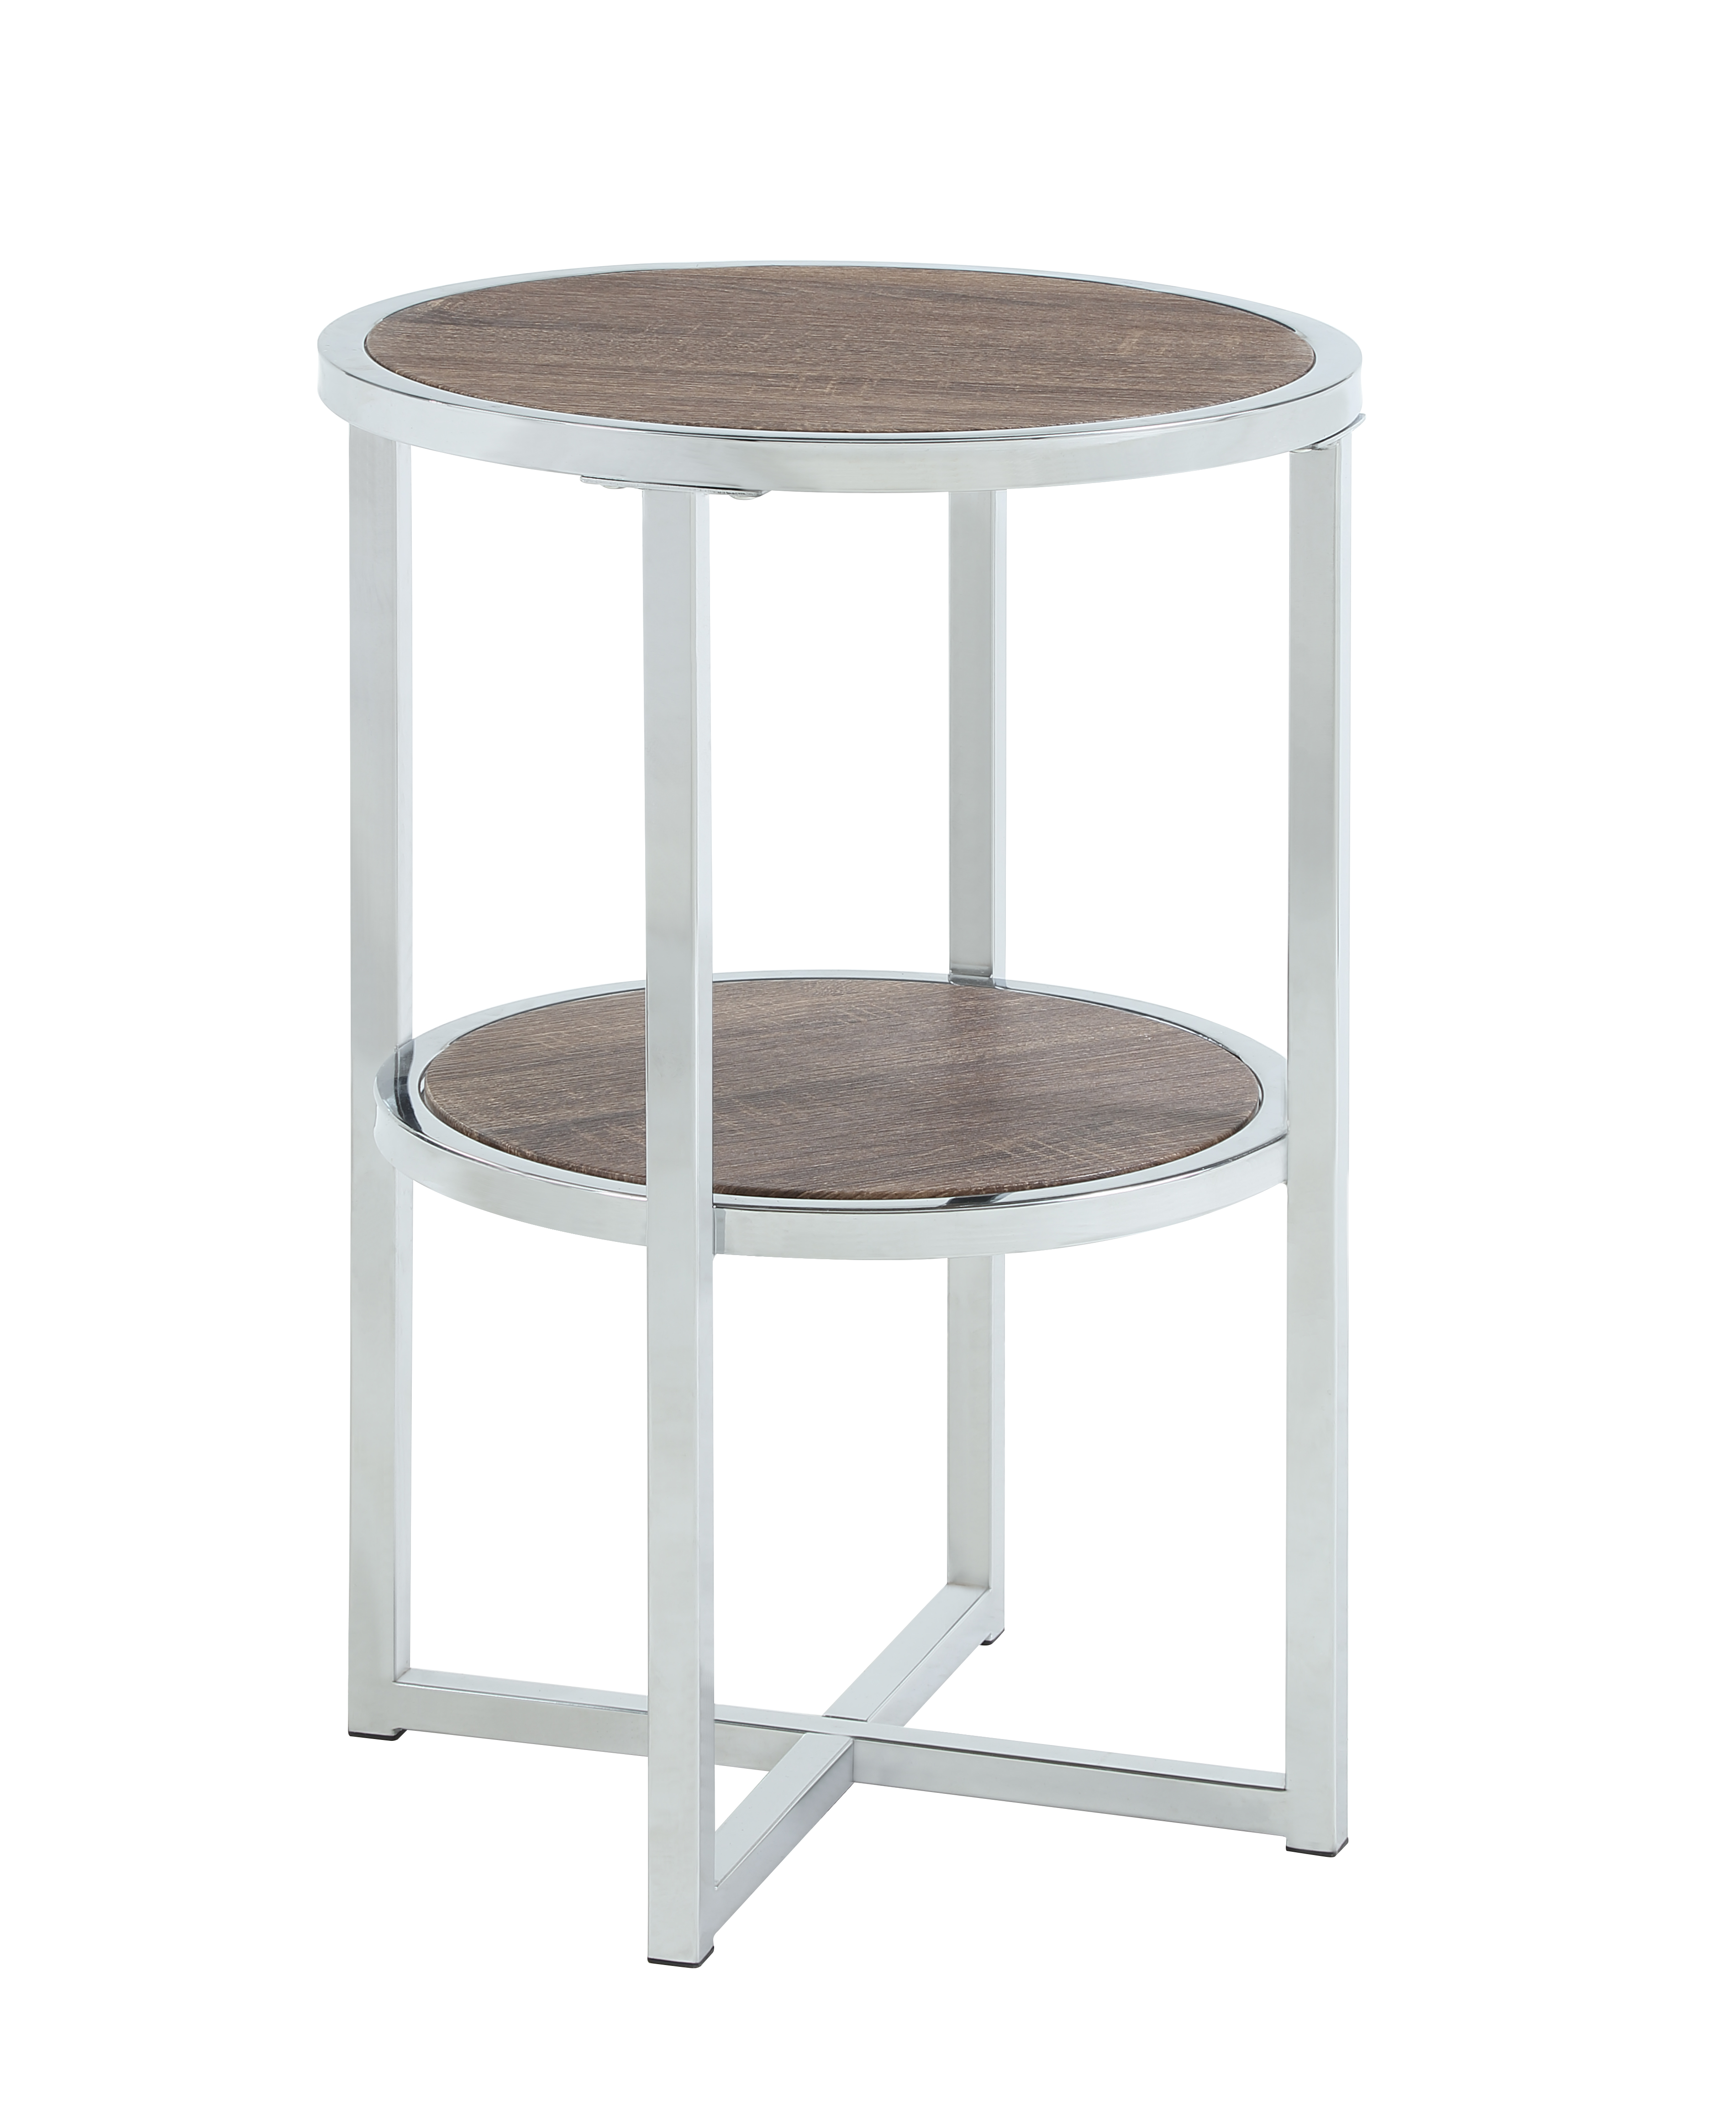 Picture of: Abington Lane Contemporary Round End Table Two Tiered For Storage Brown Finish Walmart Com Walmart Com